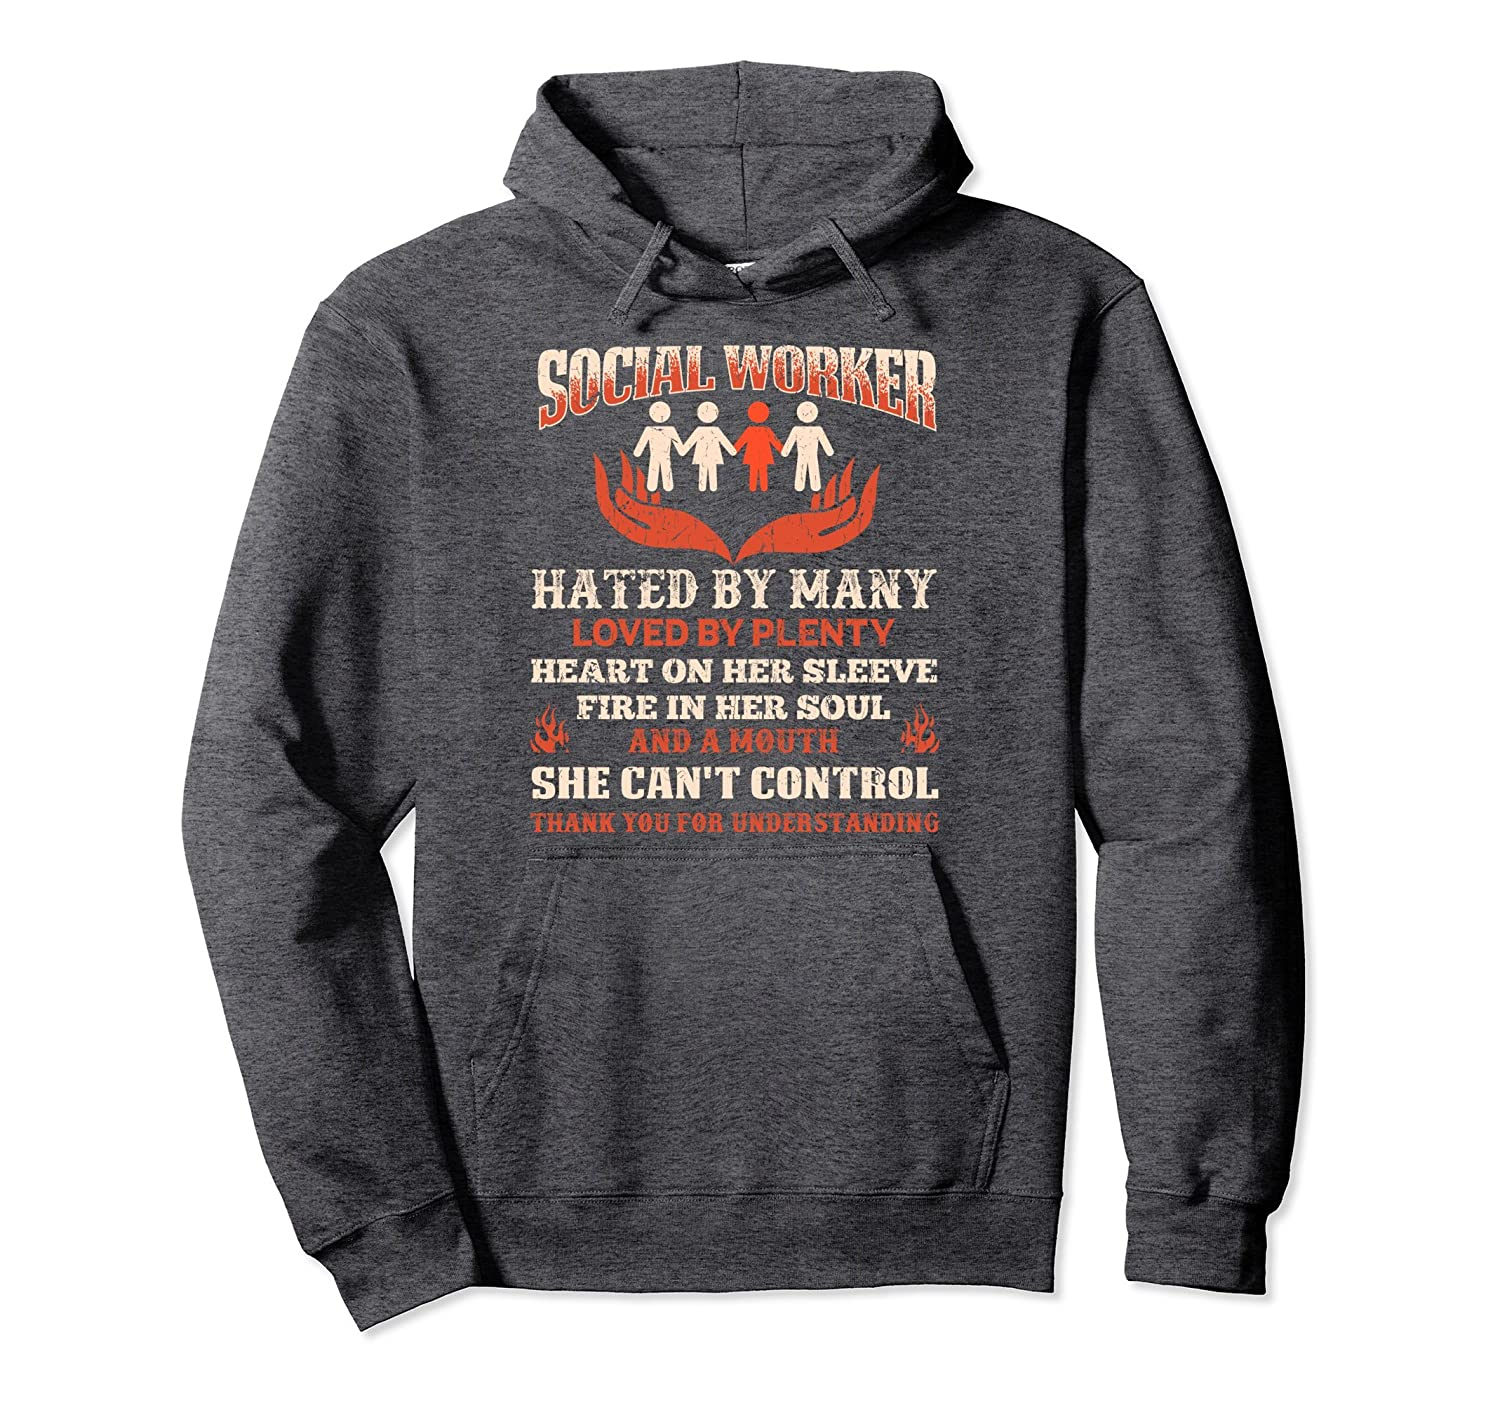 Social Worker Hated By Many Hoodie Cool Social Work Gift-4LVS